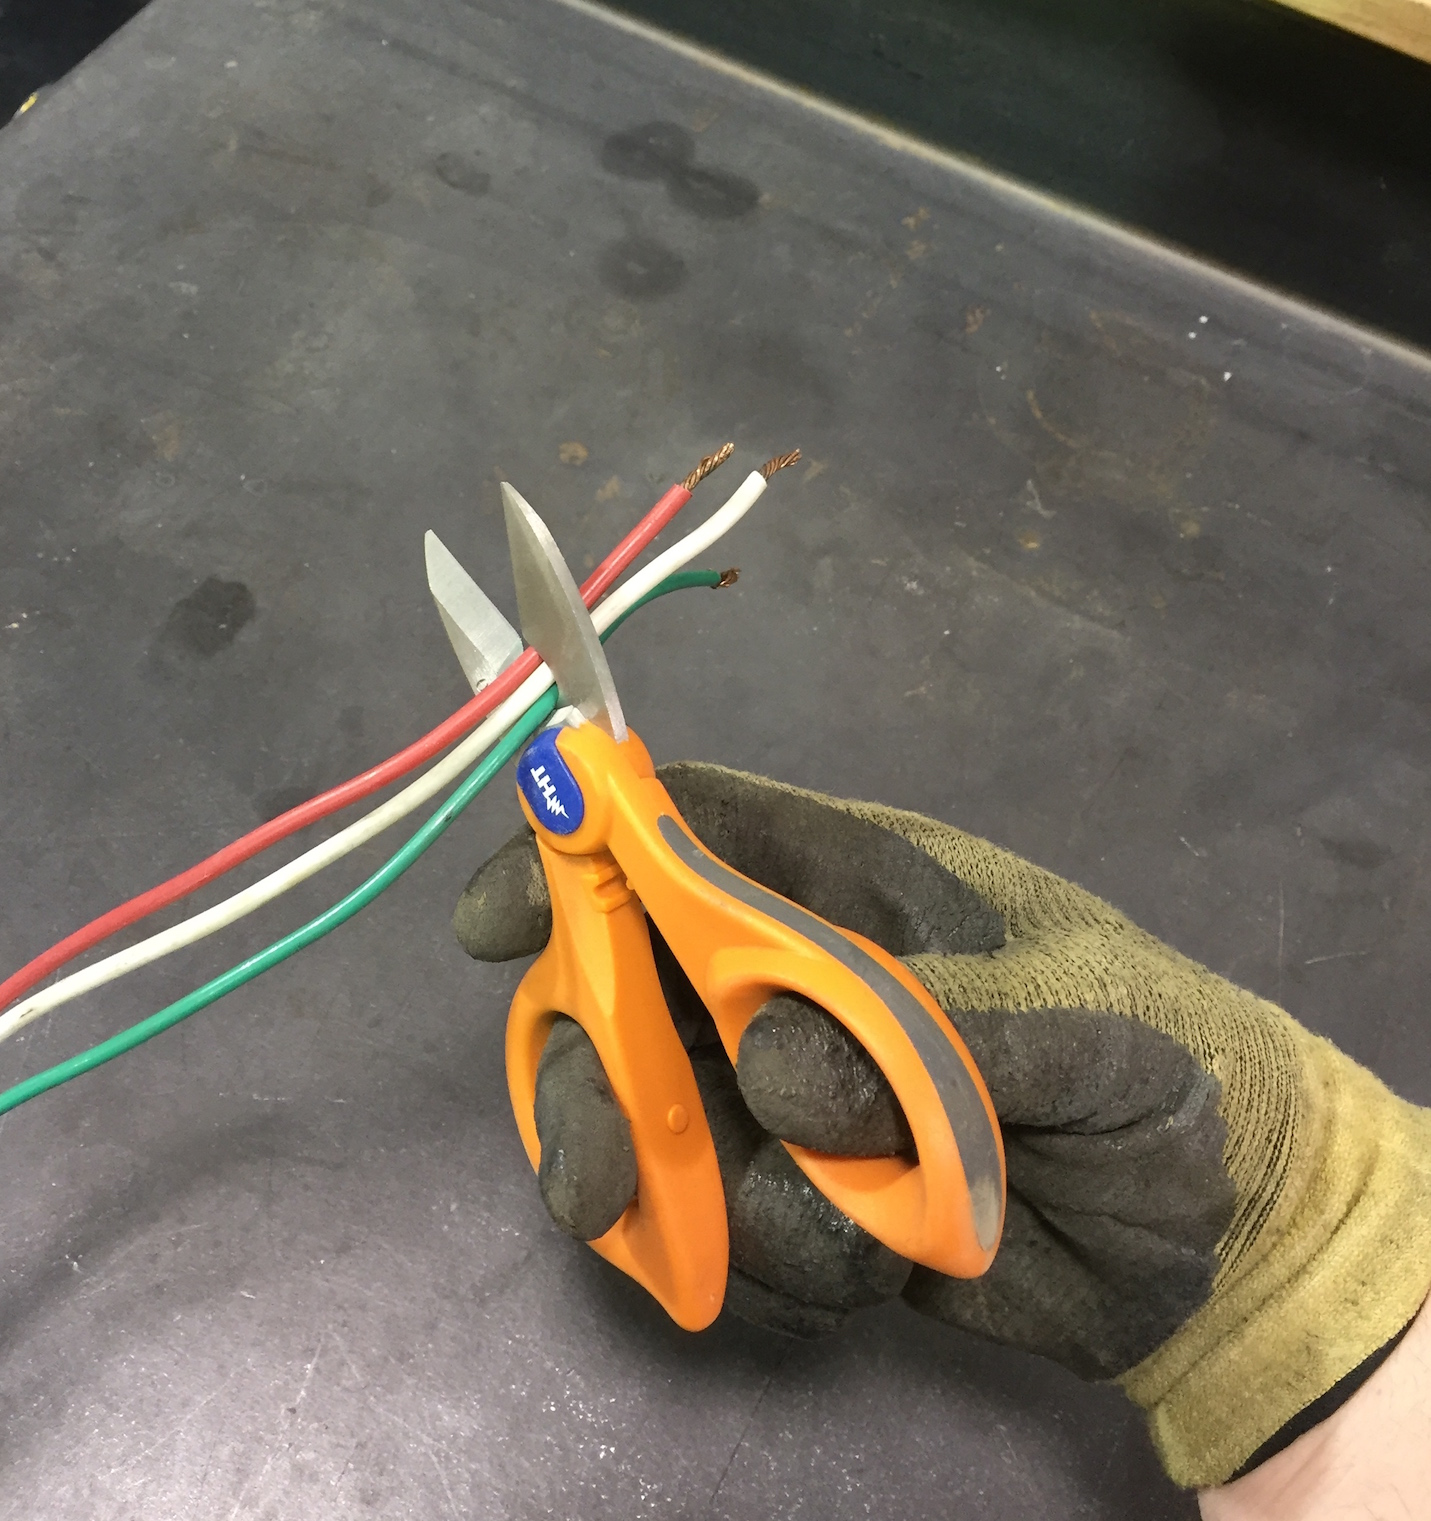 Electrician Scissors